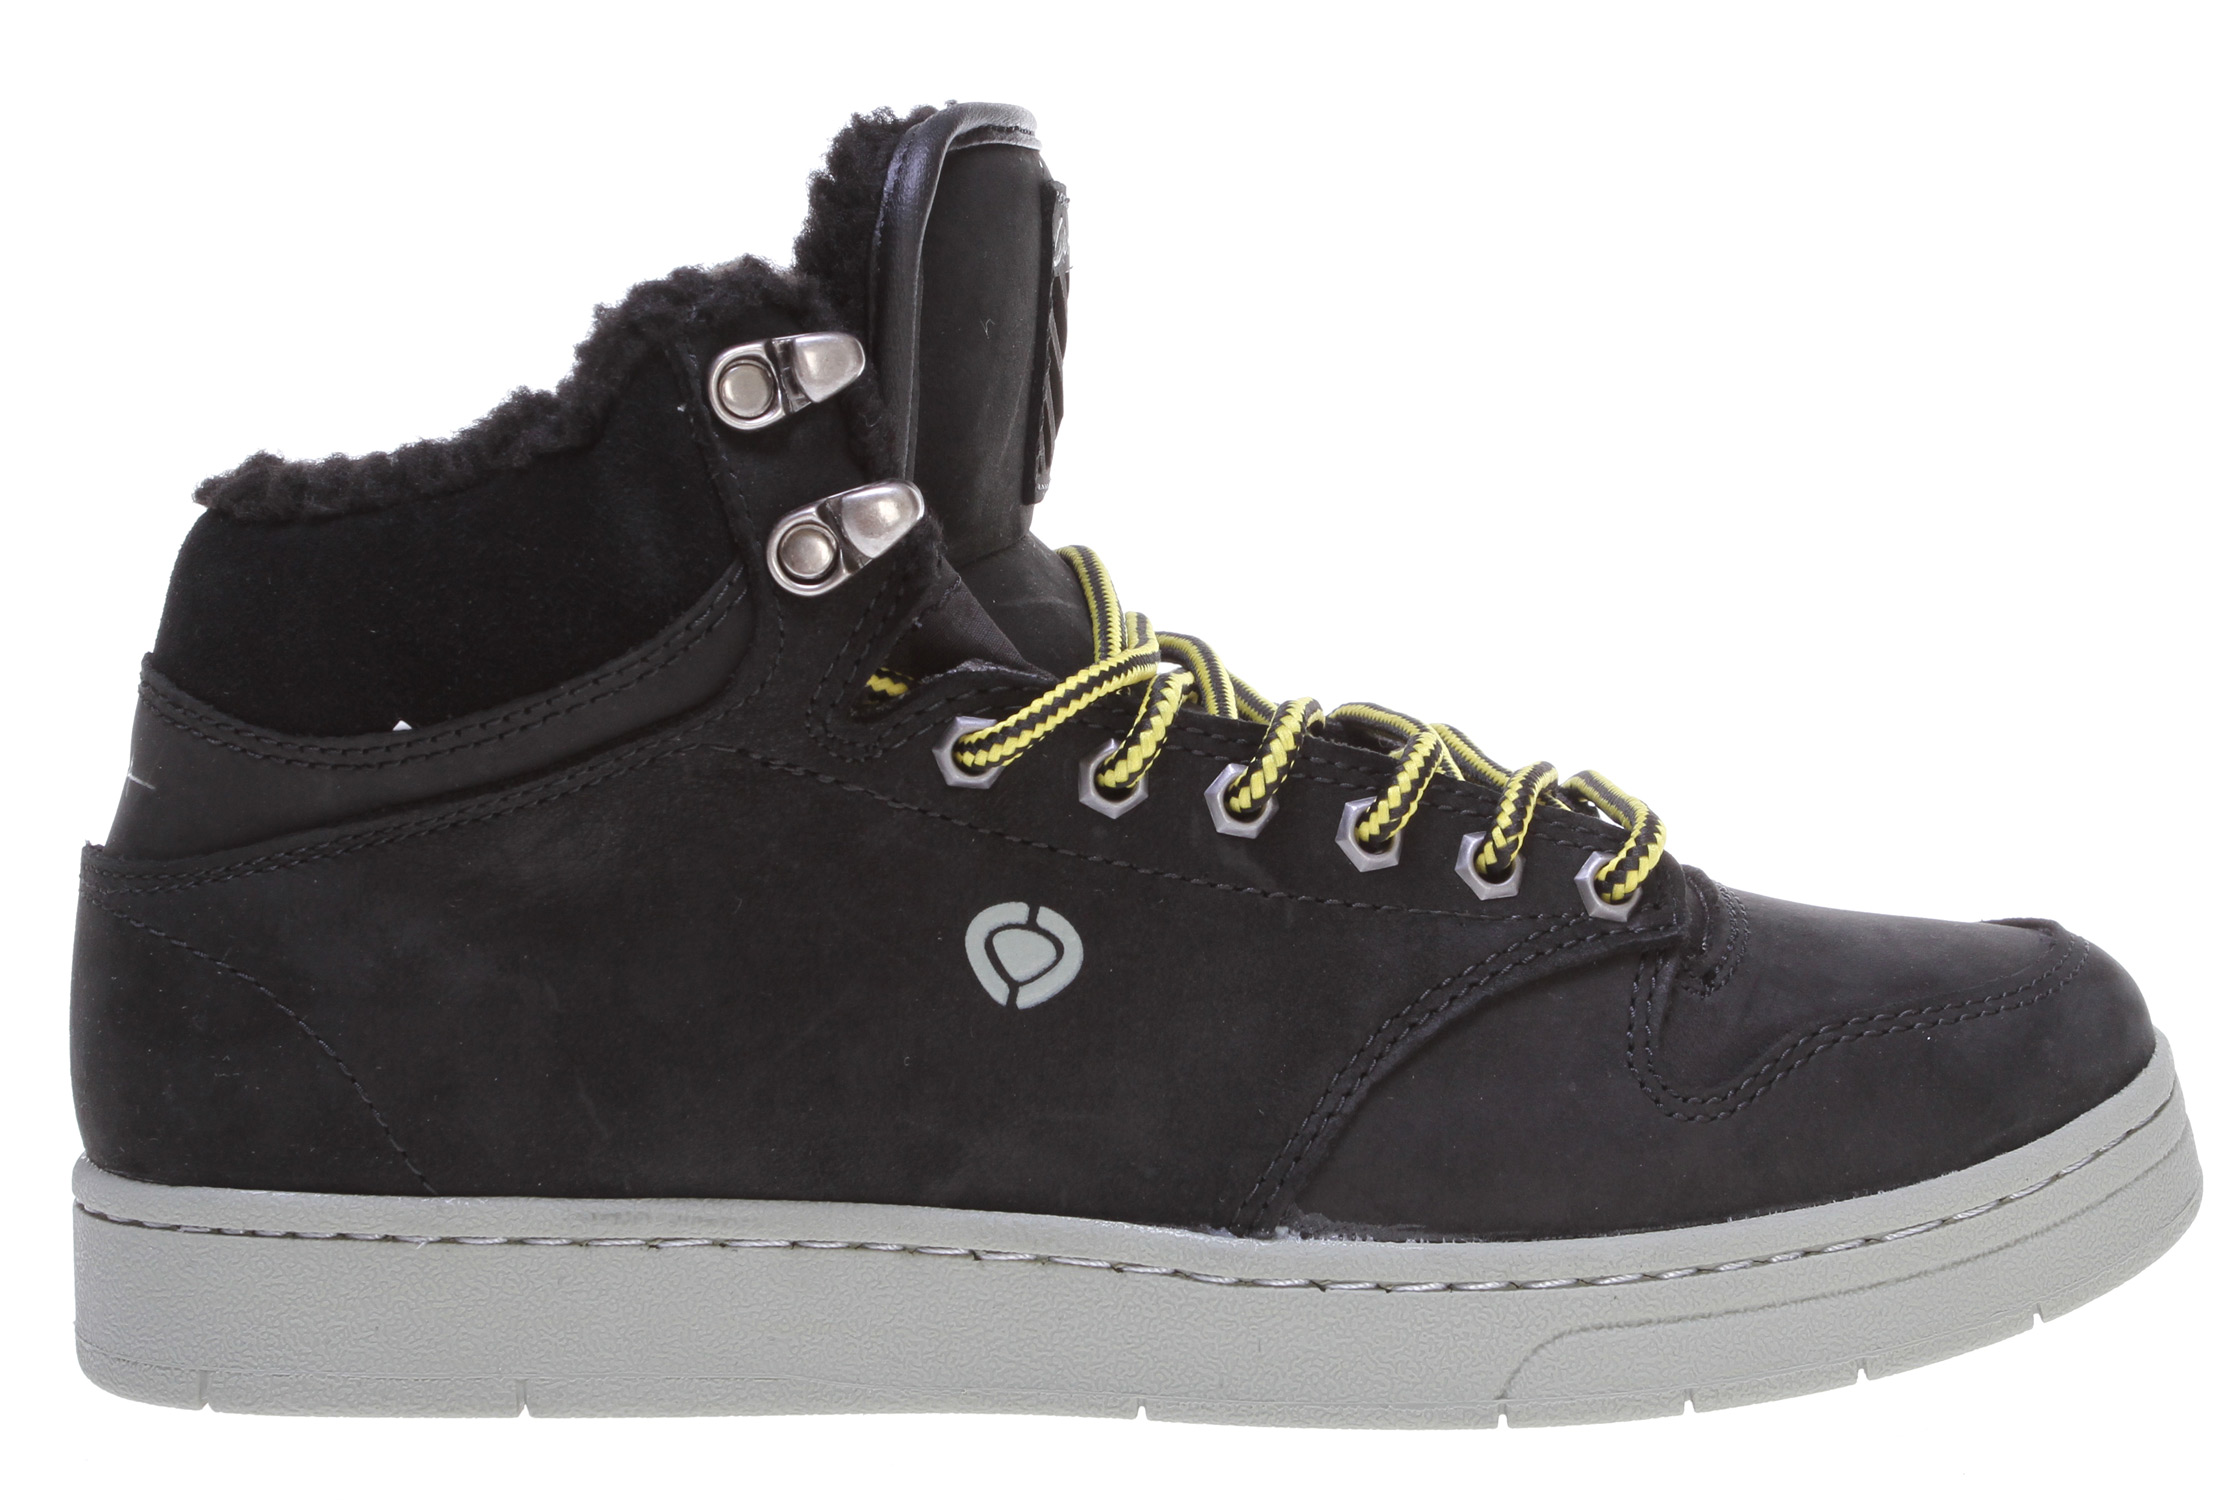 Skateboard Key Features of the Circa Lurker Skate Shoes: Specialized, unique logo and material treatment Soft, breathable fabric lining Quality strobel construction Insulated upper Waterproof tongue gussets Water resistant upper treatment - $71.95